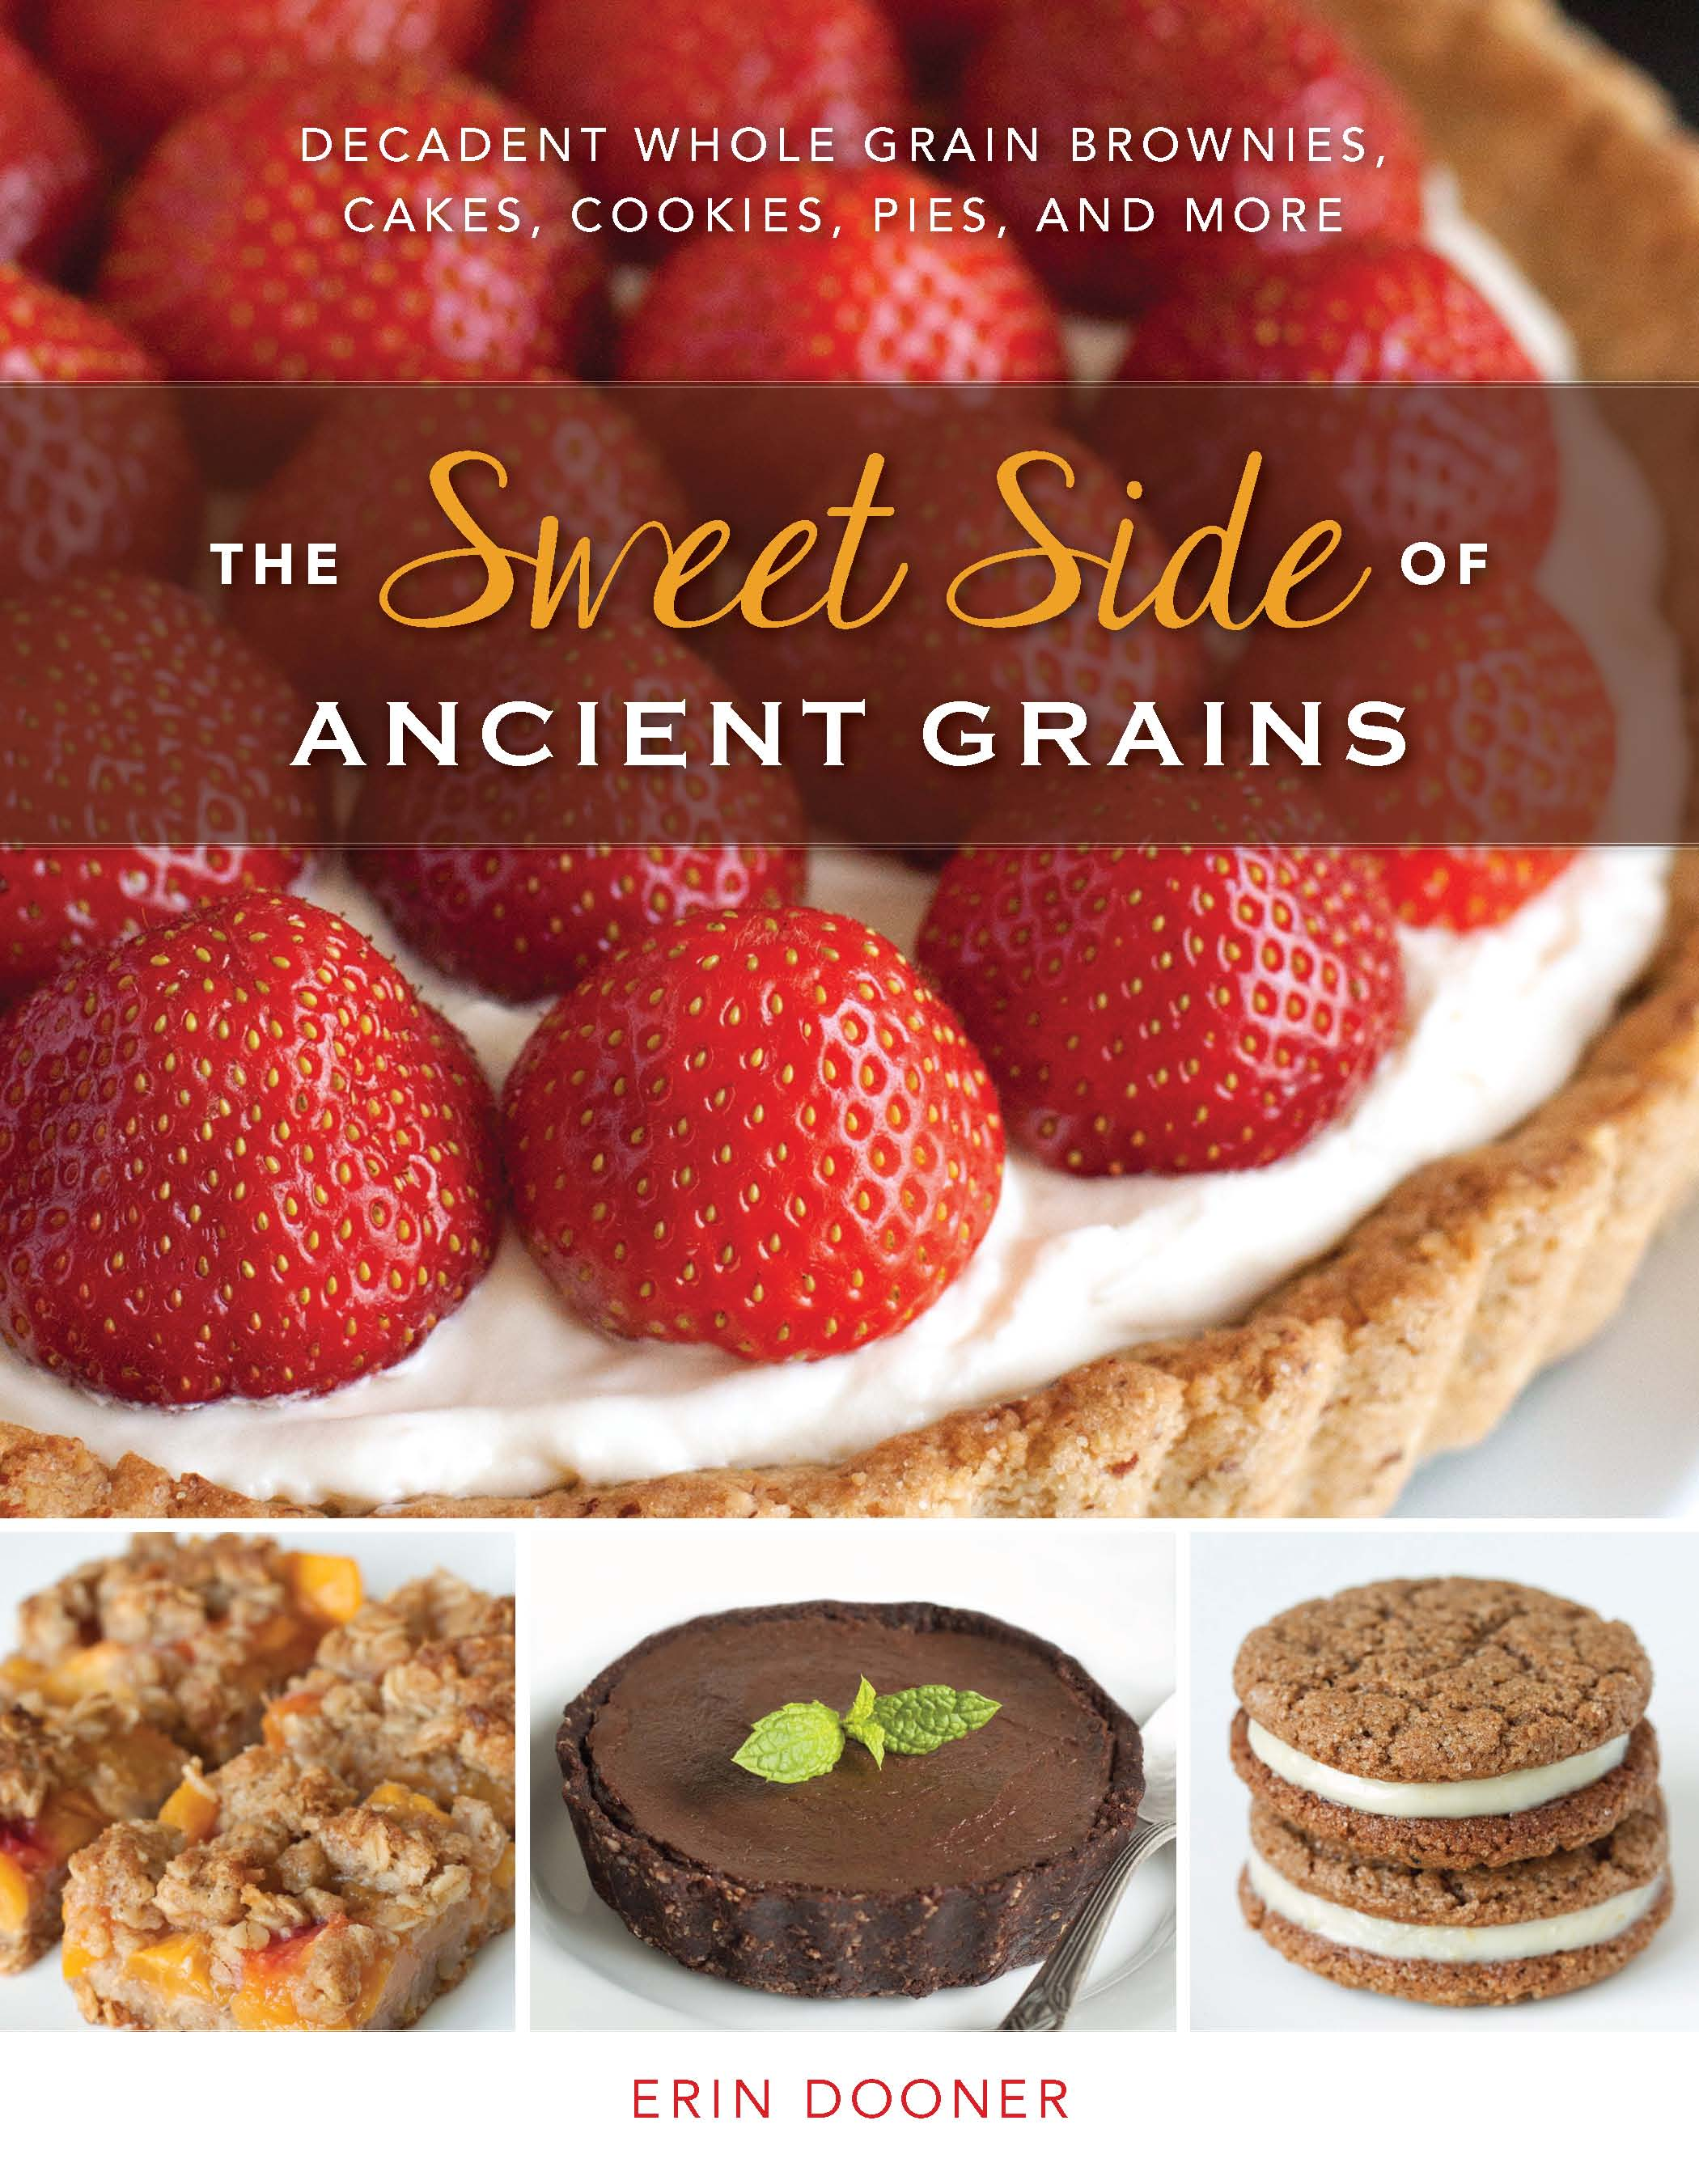 The Sweet Side of Ancient Grains: A review